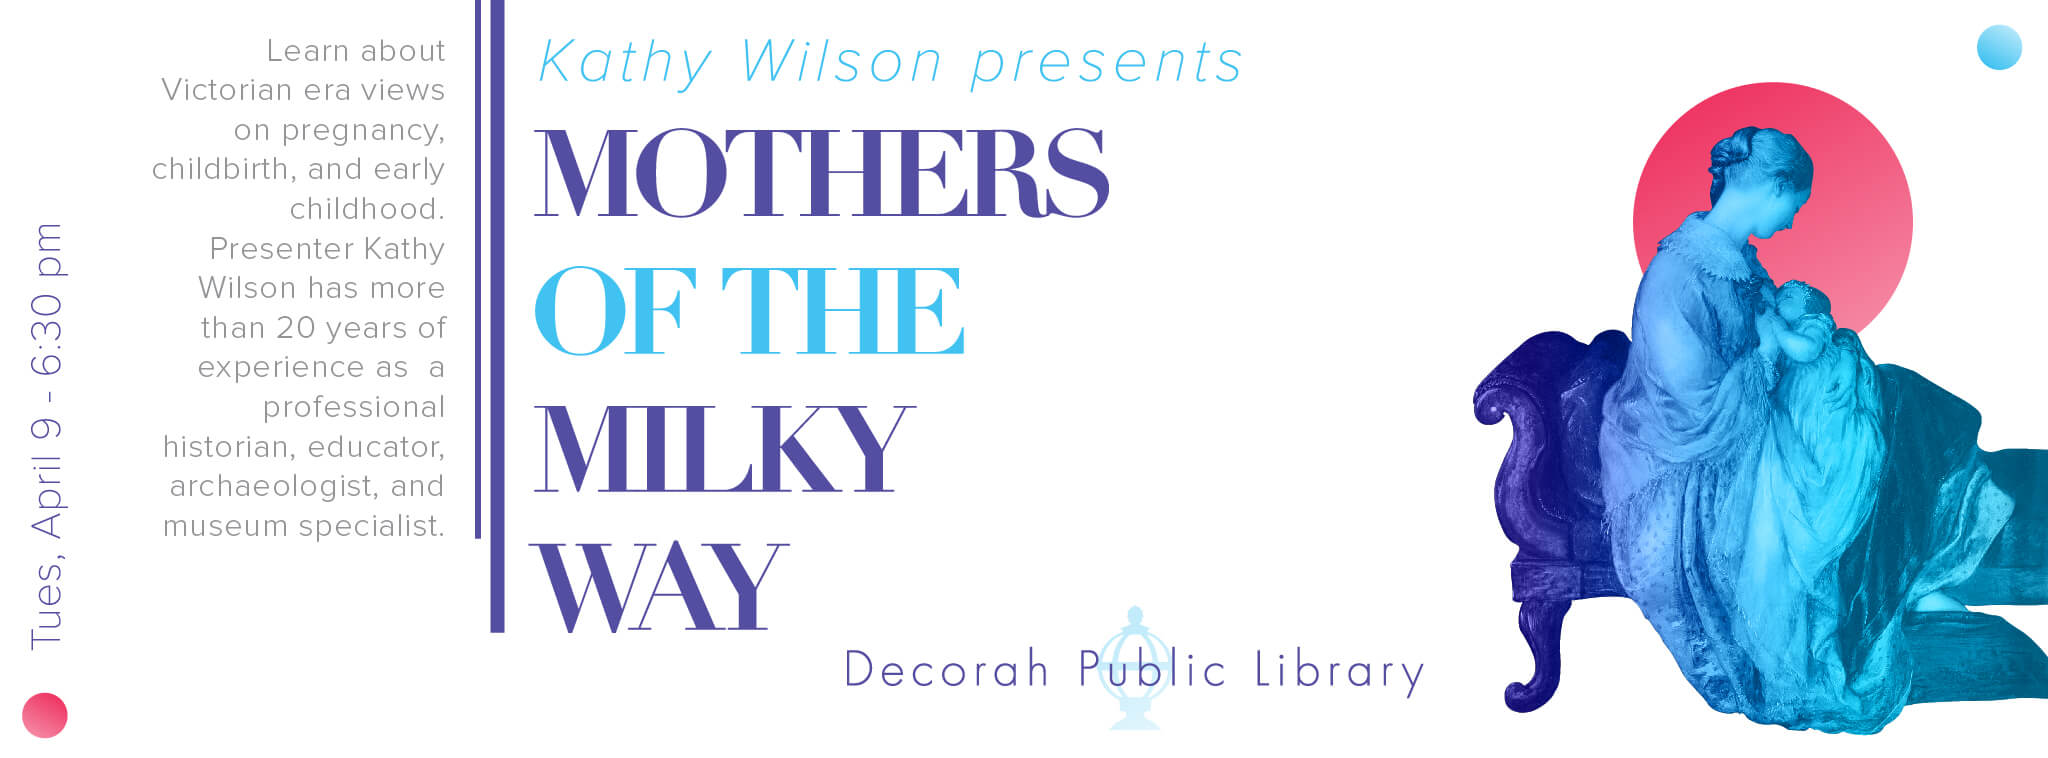 Mothers of the Milky Way